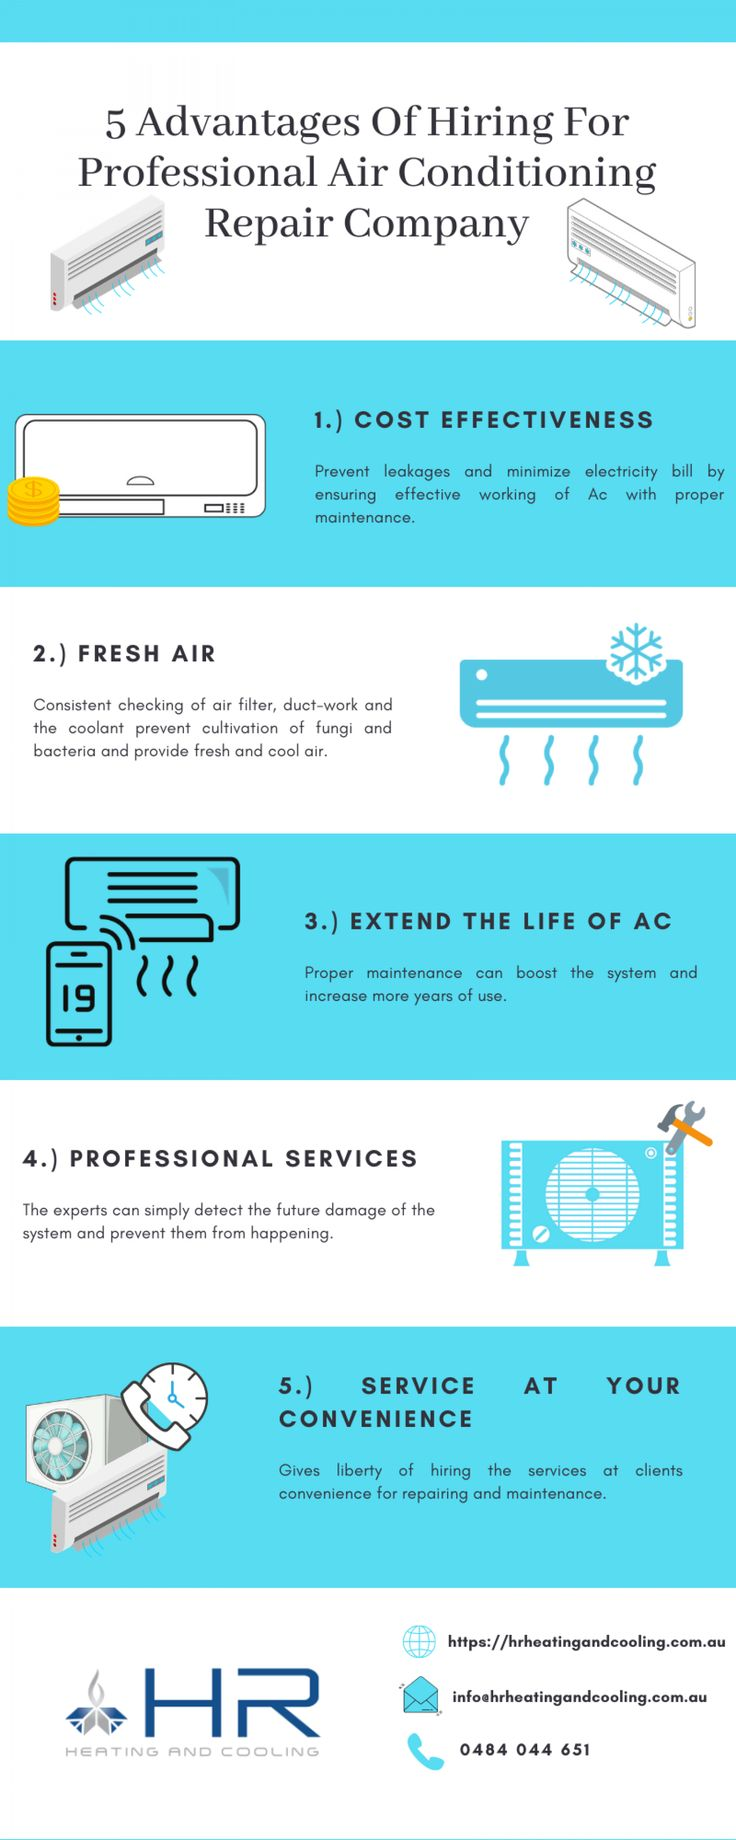 5 Advantages of hiring for Professional Air conditioning